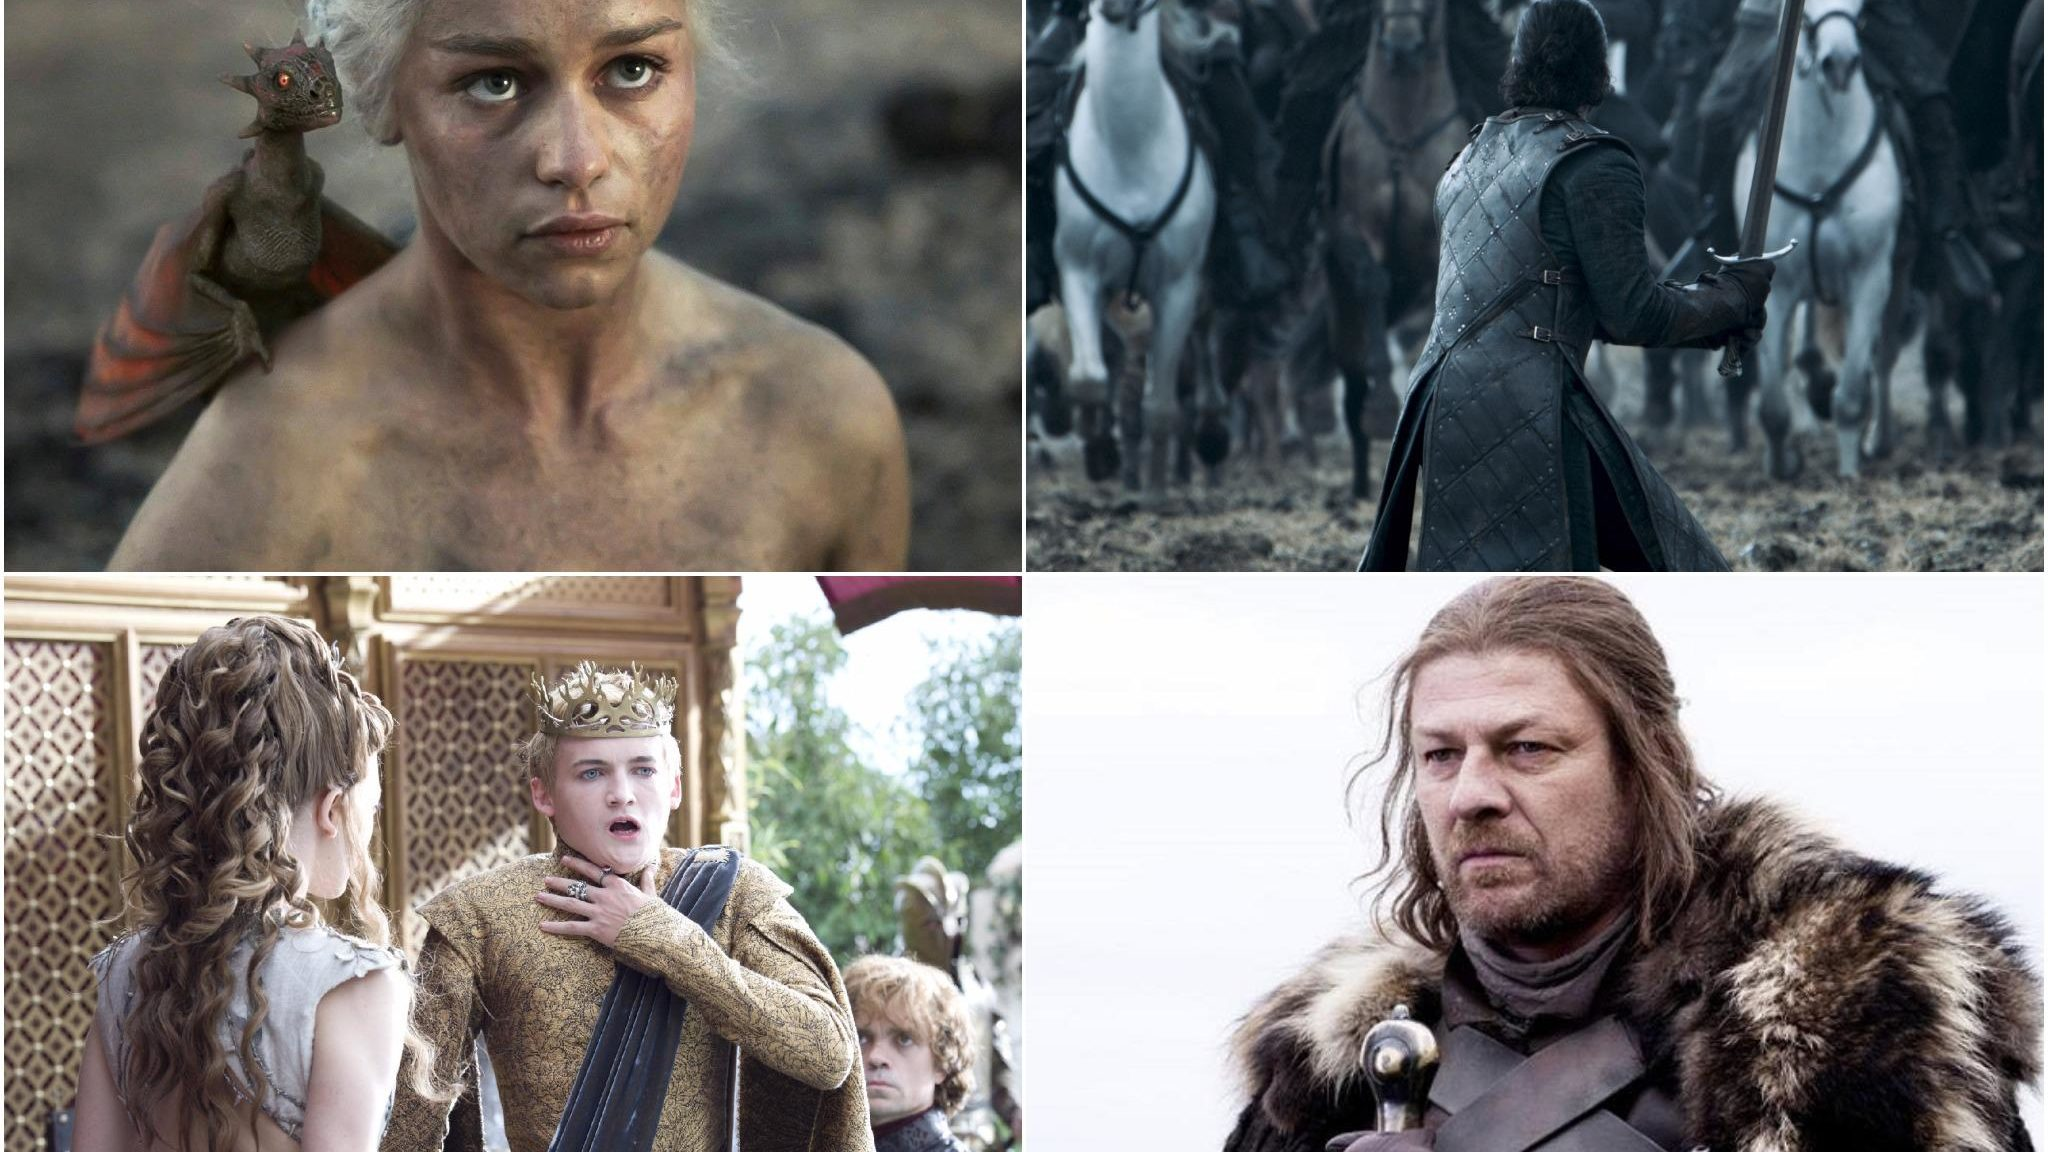 Best and worst Game of Thrones season ranked